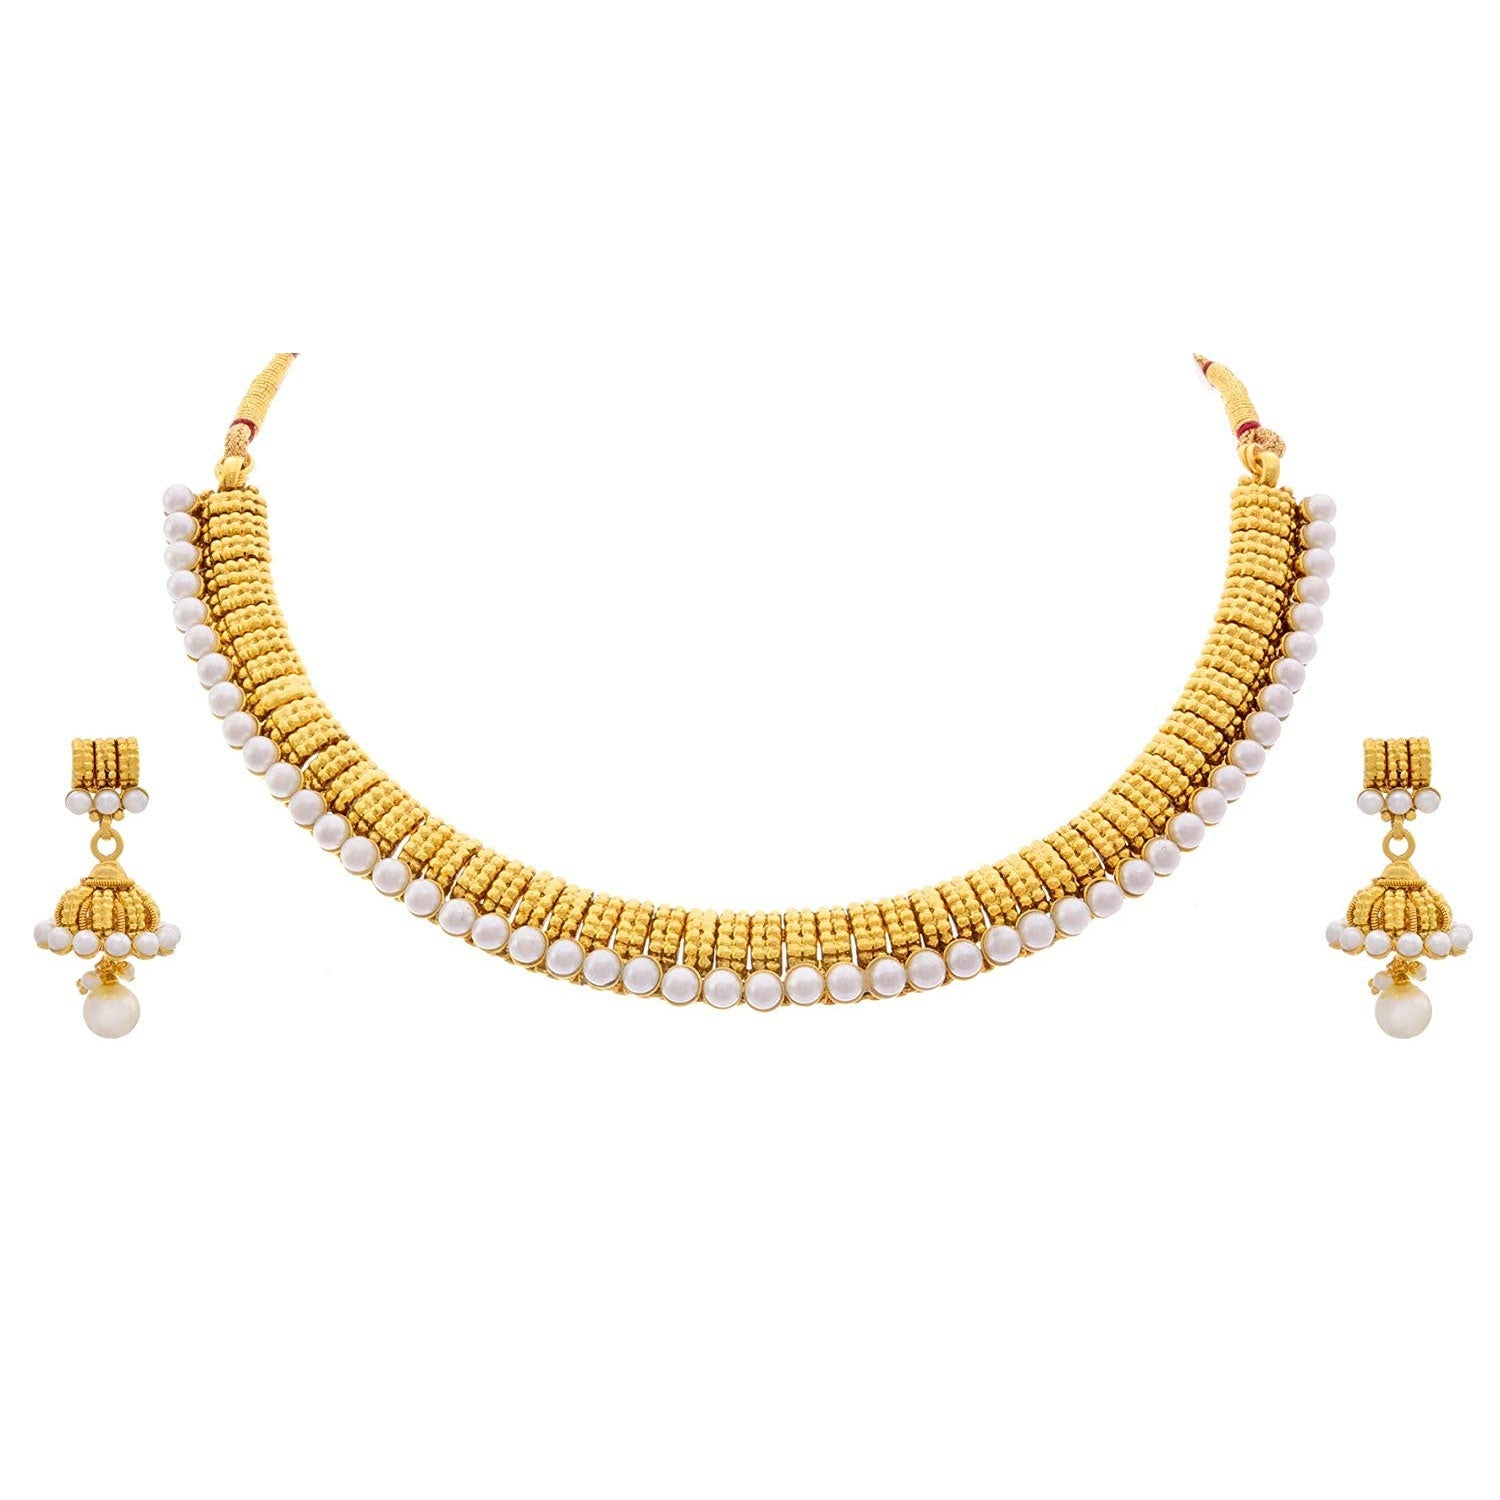 JFL - Traditional Ethnic One Gram Gold Plated Designer Necklace Set with Jhumka Earring studded with Pearls for Girls & Women.